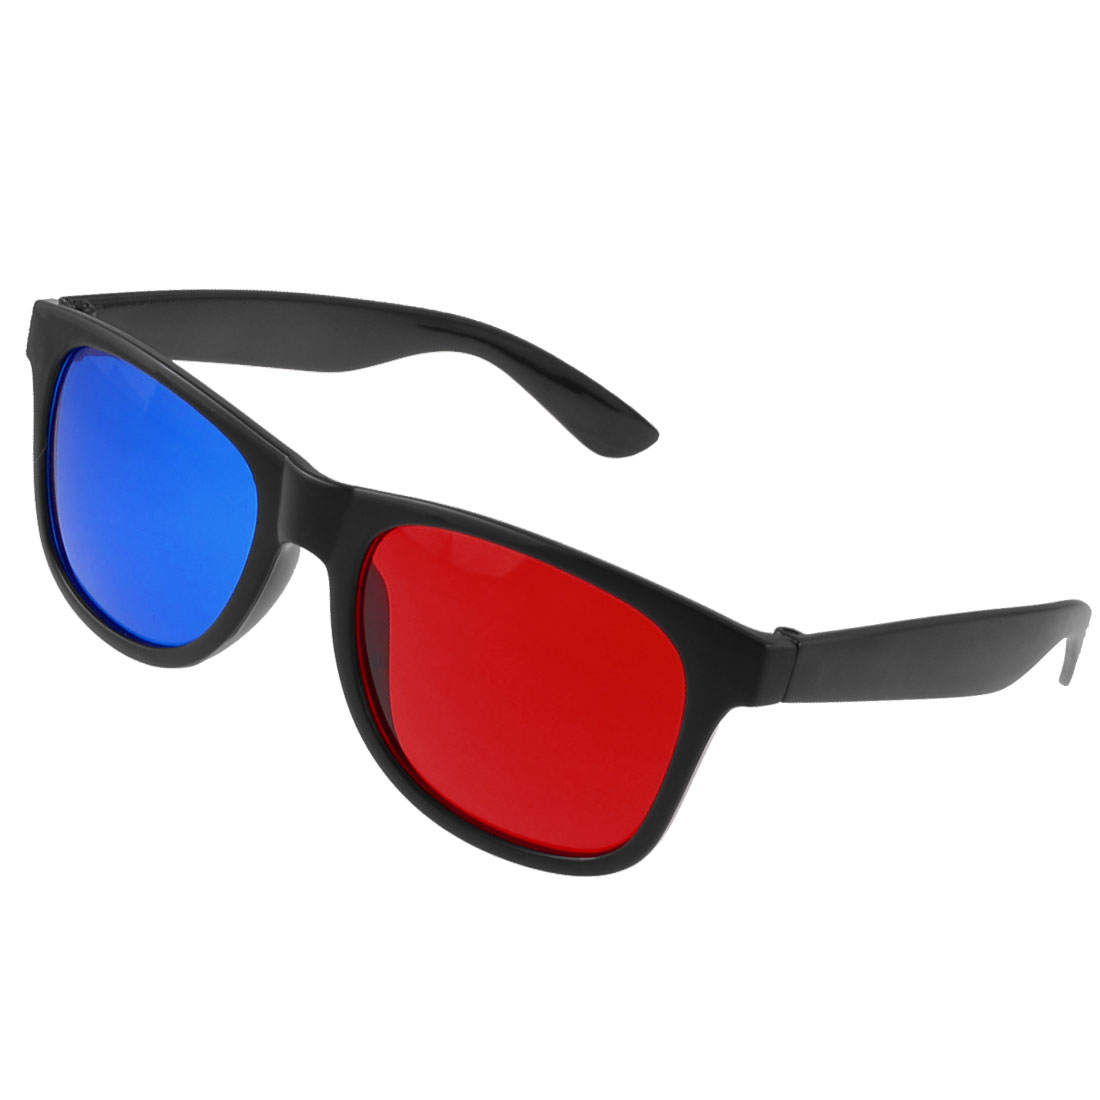 Home Cinema Hard Plastic Anaglyph Moive Games 3D-Glasses Eyeglasses Red Cyan